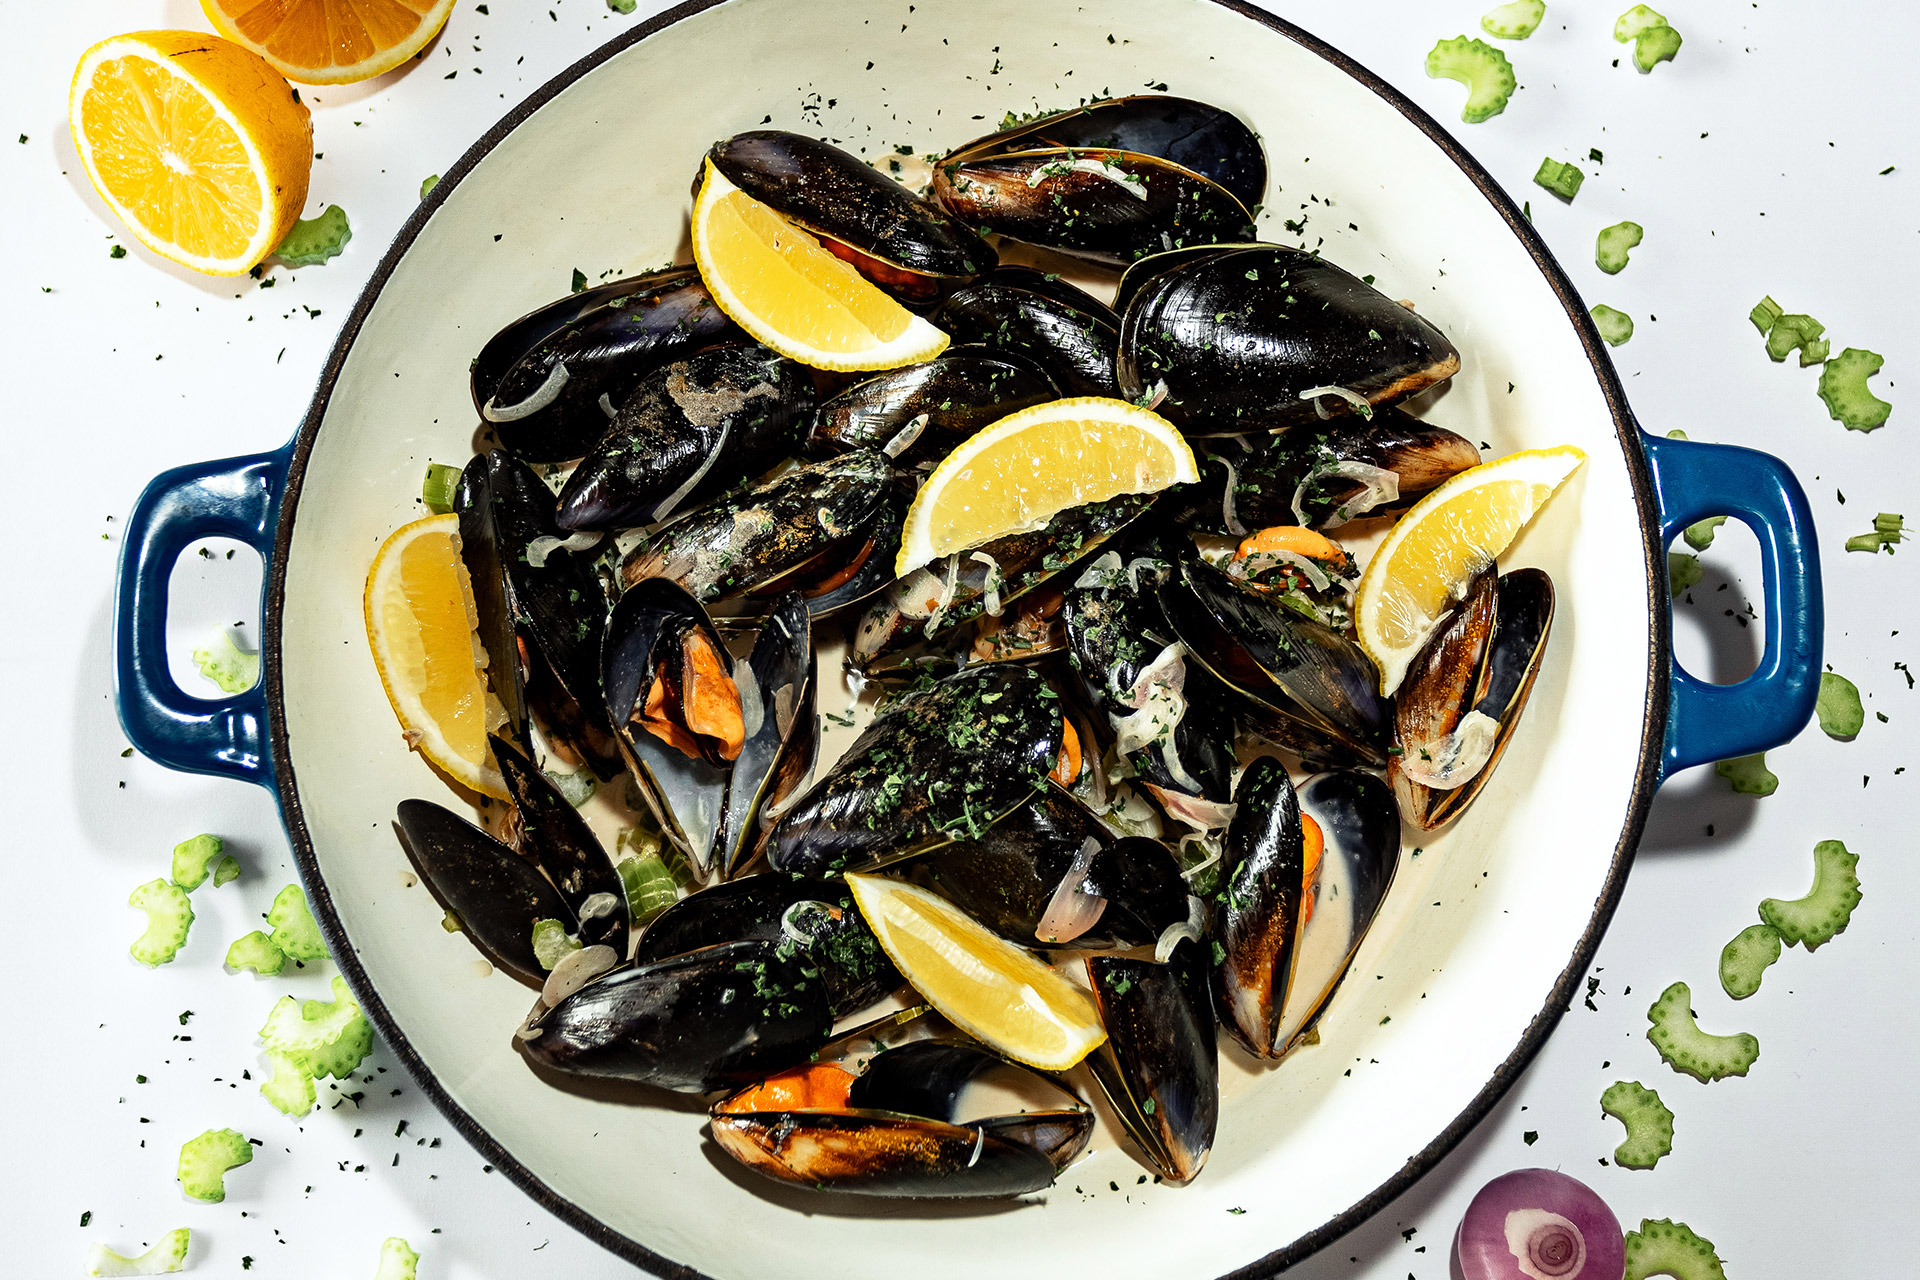 Taste showcase   Spanish Mussels with Celery and White Wine